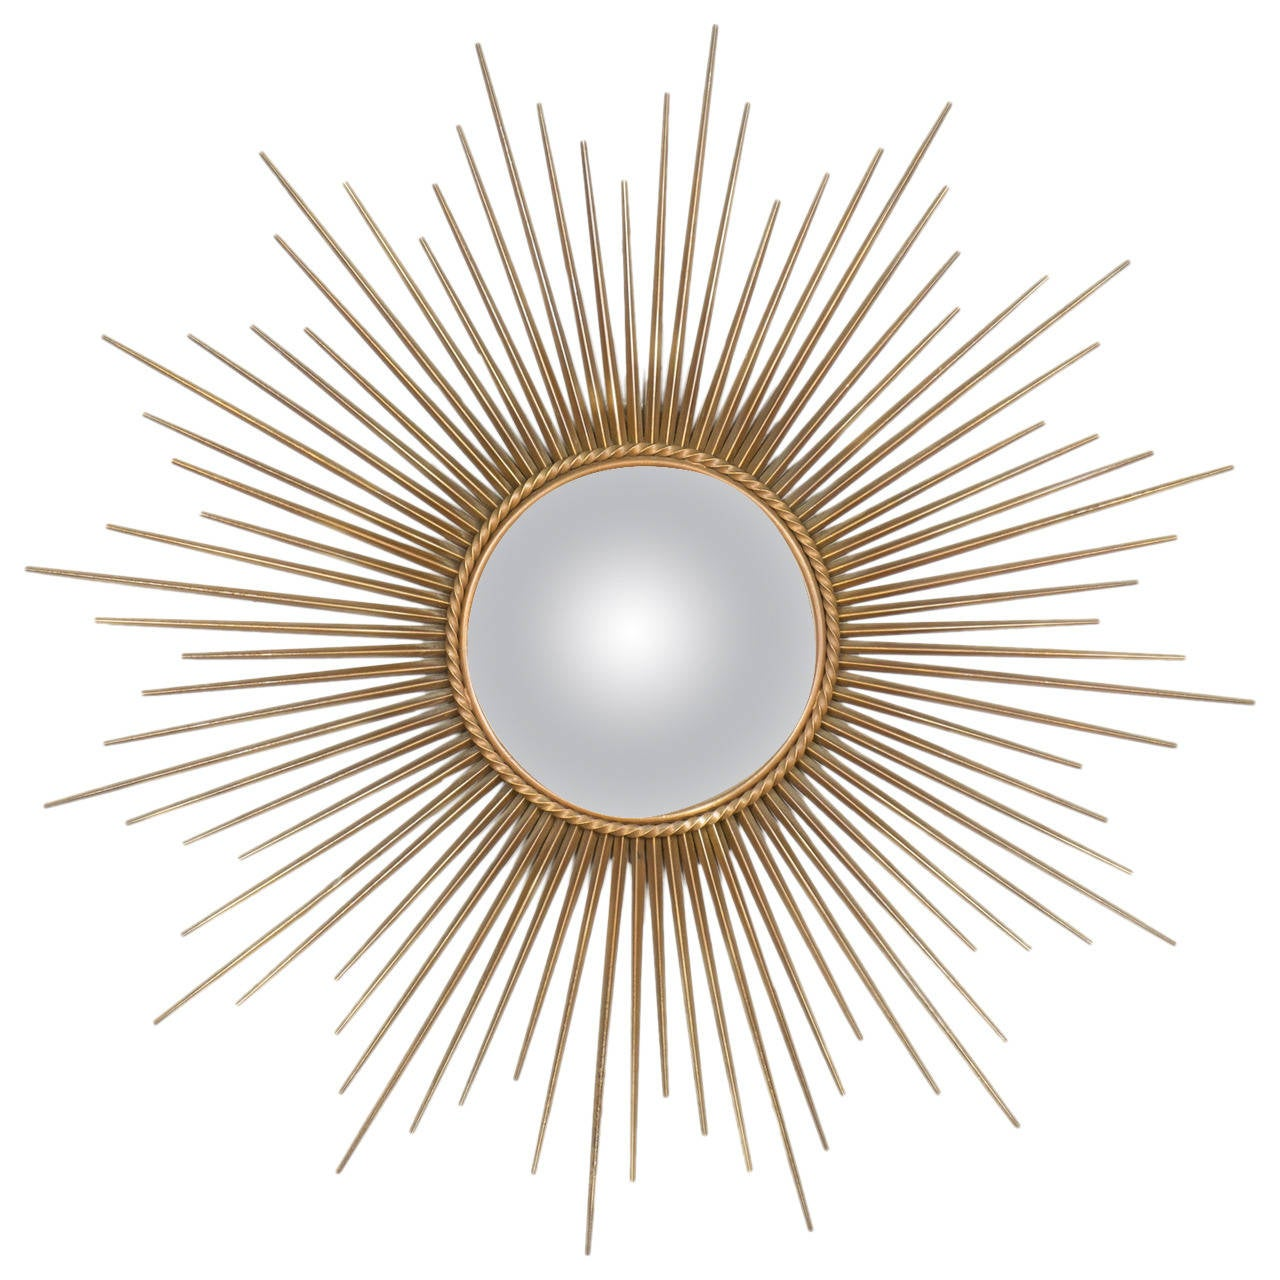 French vintage sunburst mirror by maison chaty at 1stdibs for Sunburst mirror